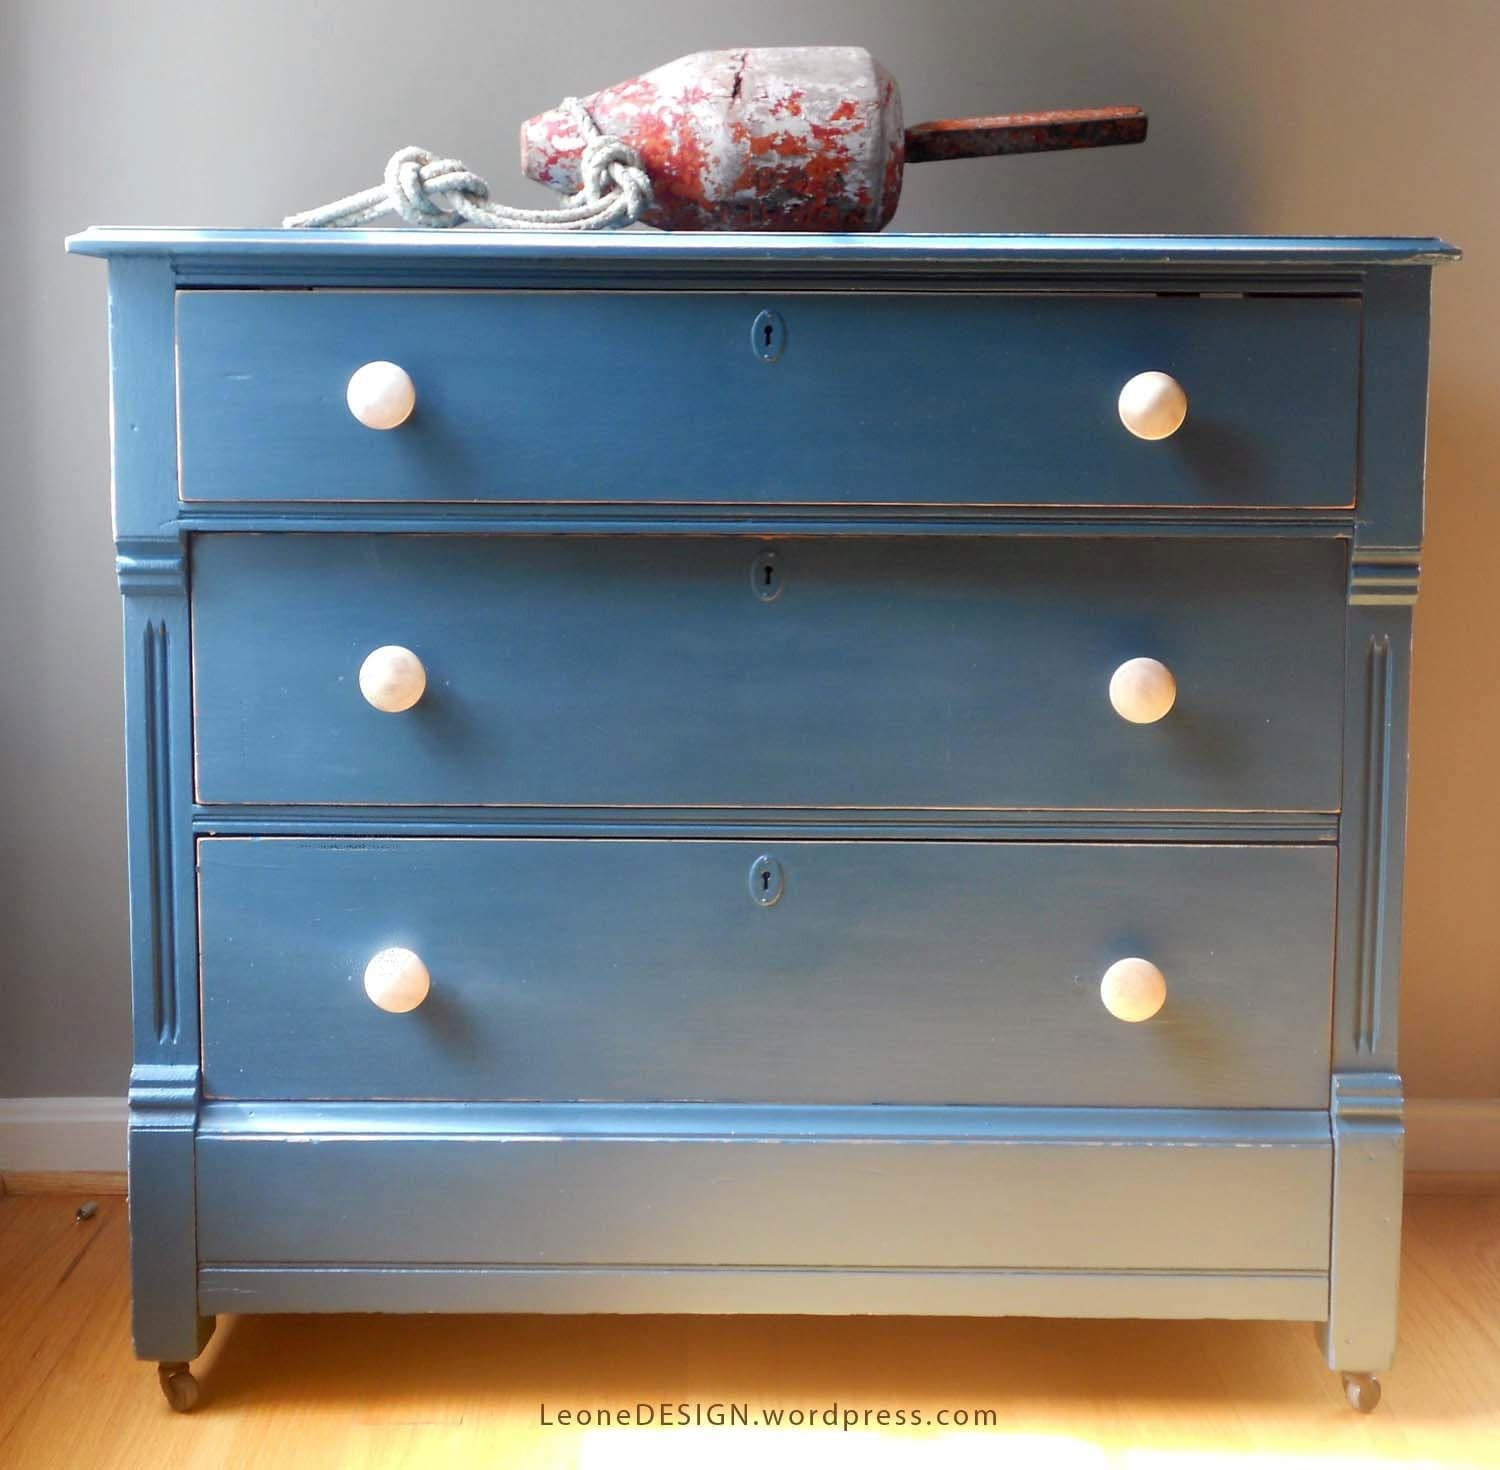 Painted Dresser Distressed Peacock Color 19 By MarthaLeoneDesign